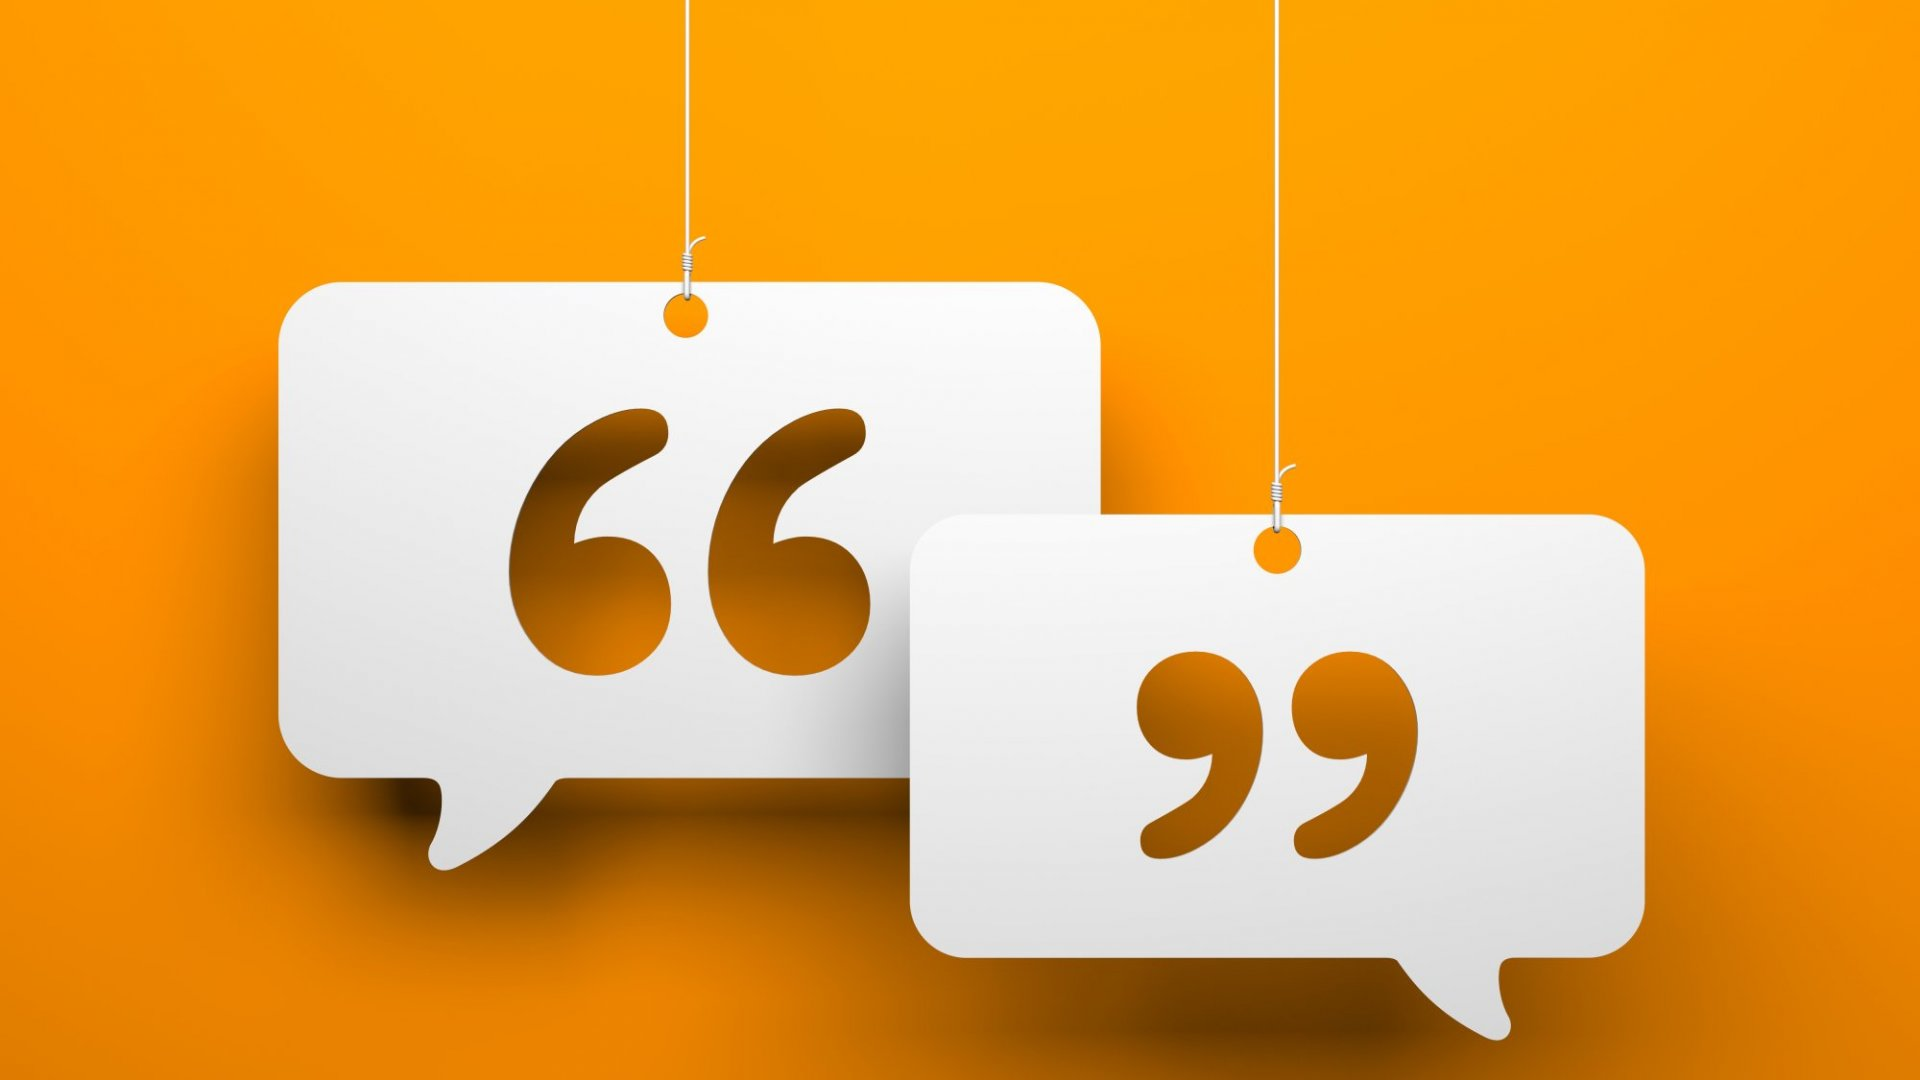 What 'Love Language' Does Your Employee Speak?